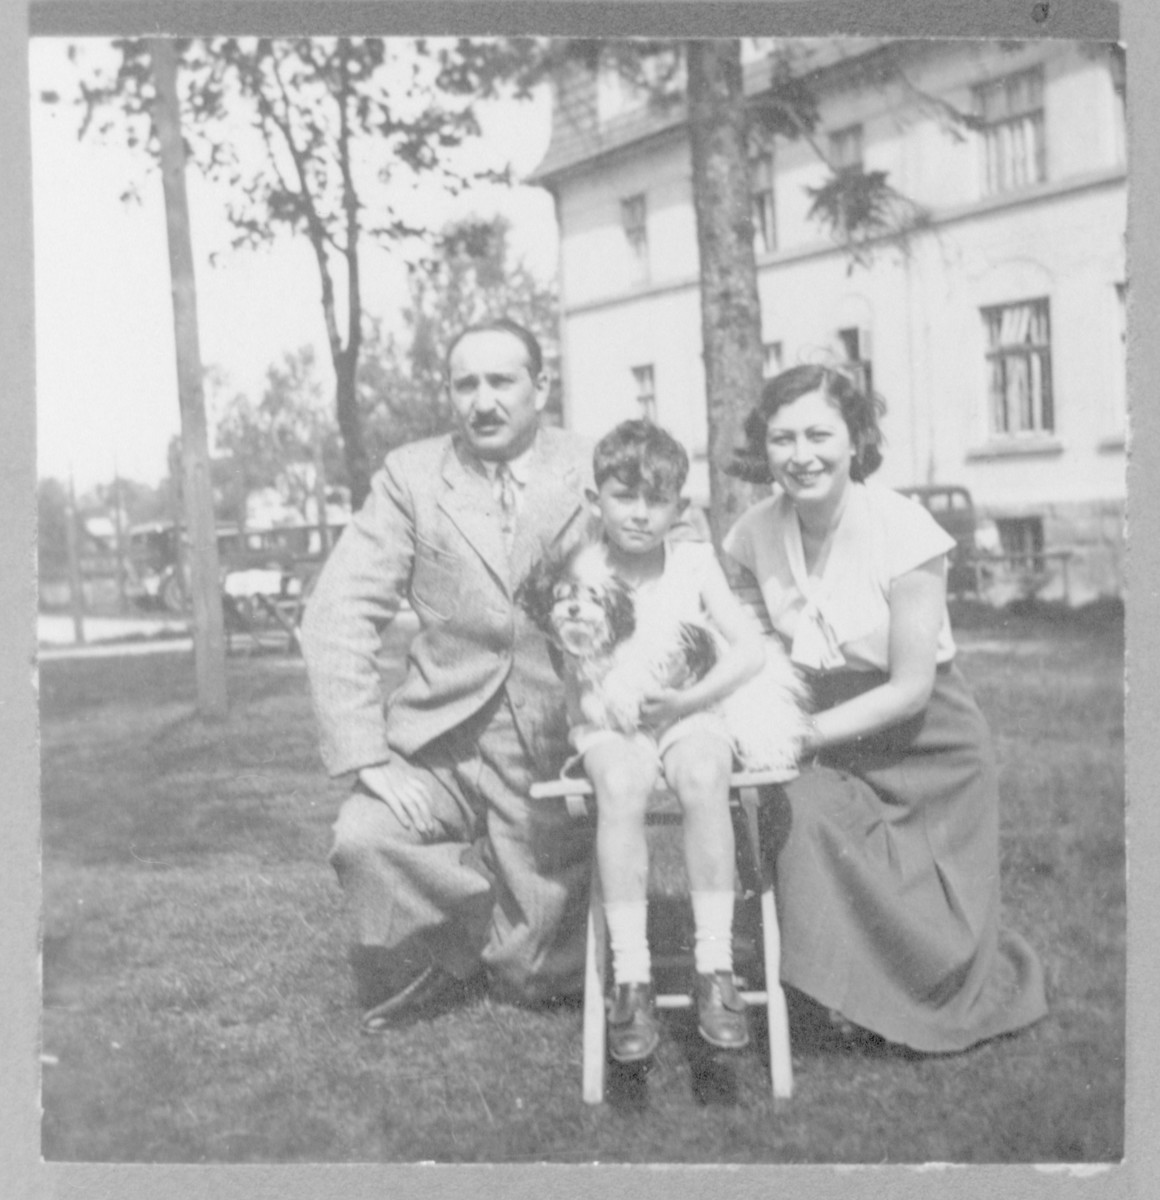 Roman Frister poses with his parents, Franciszka and Wilhelm, on the grounds of the Villa Maria in Szczyrk, Poland.